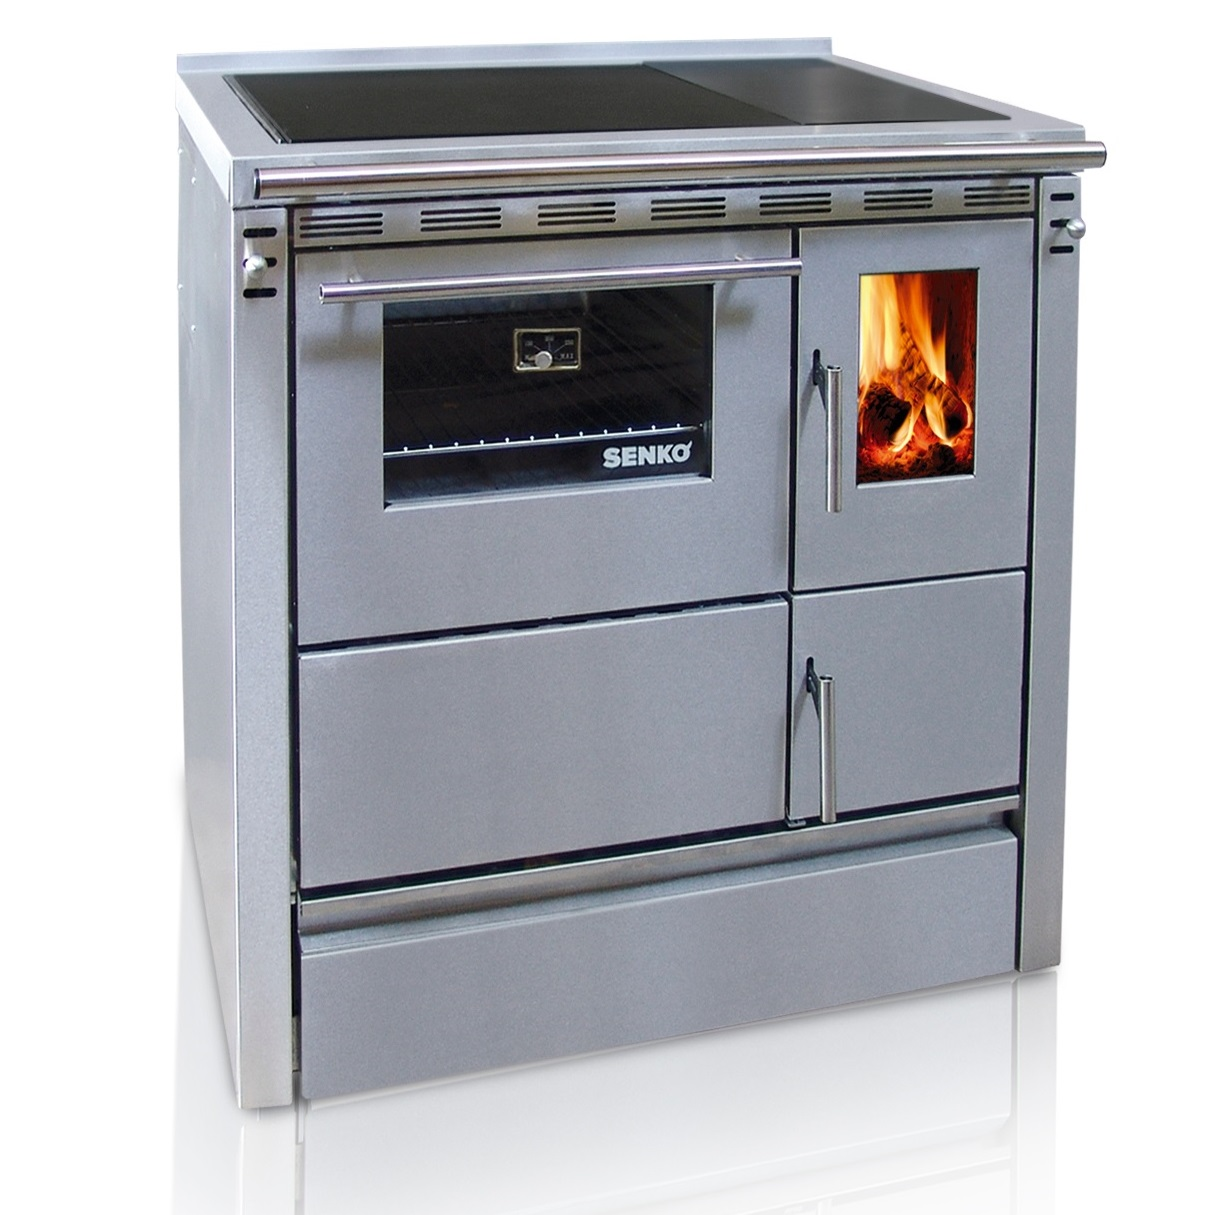 SENKO solid fuel cooker SG-75 2375D (7.5kW), chimney connection on ...